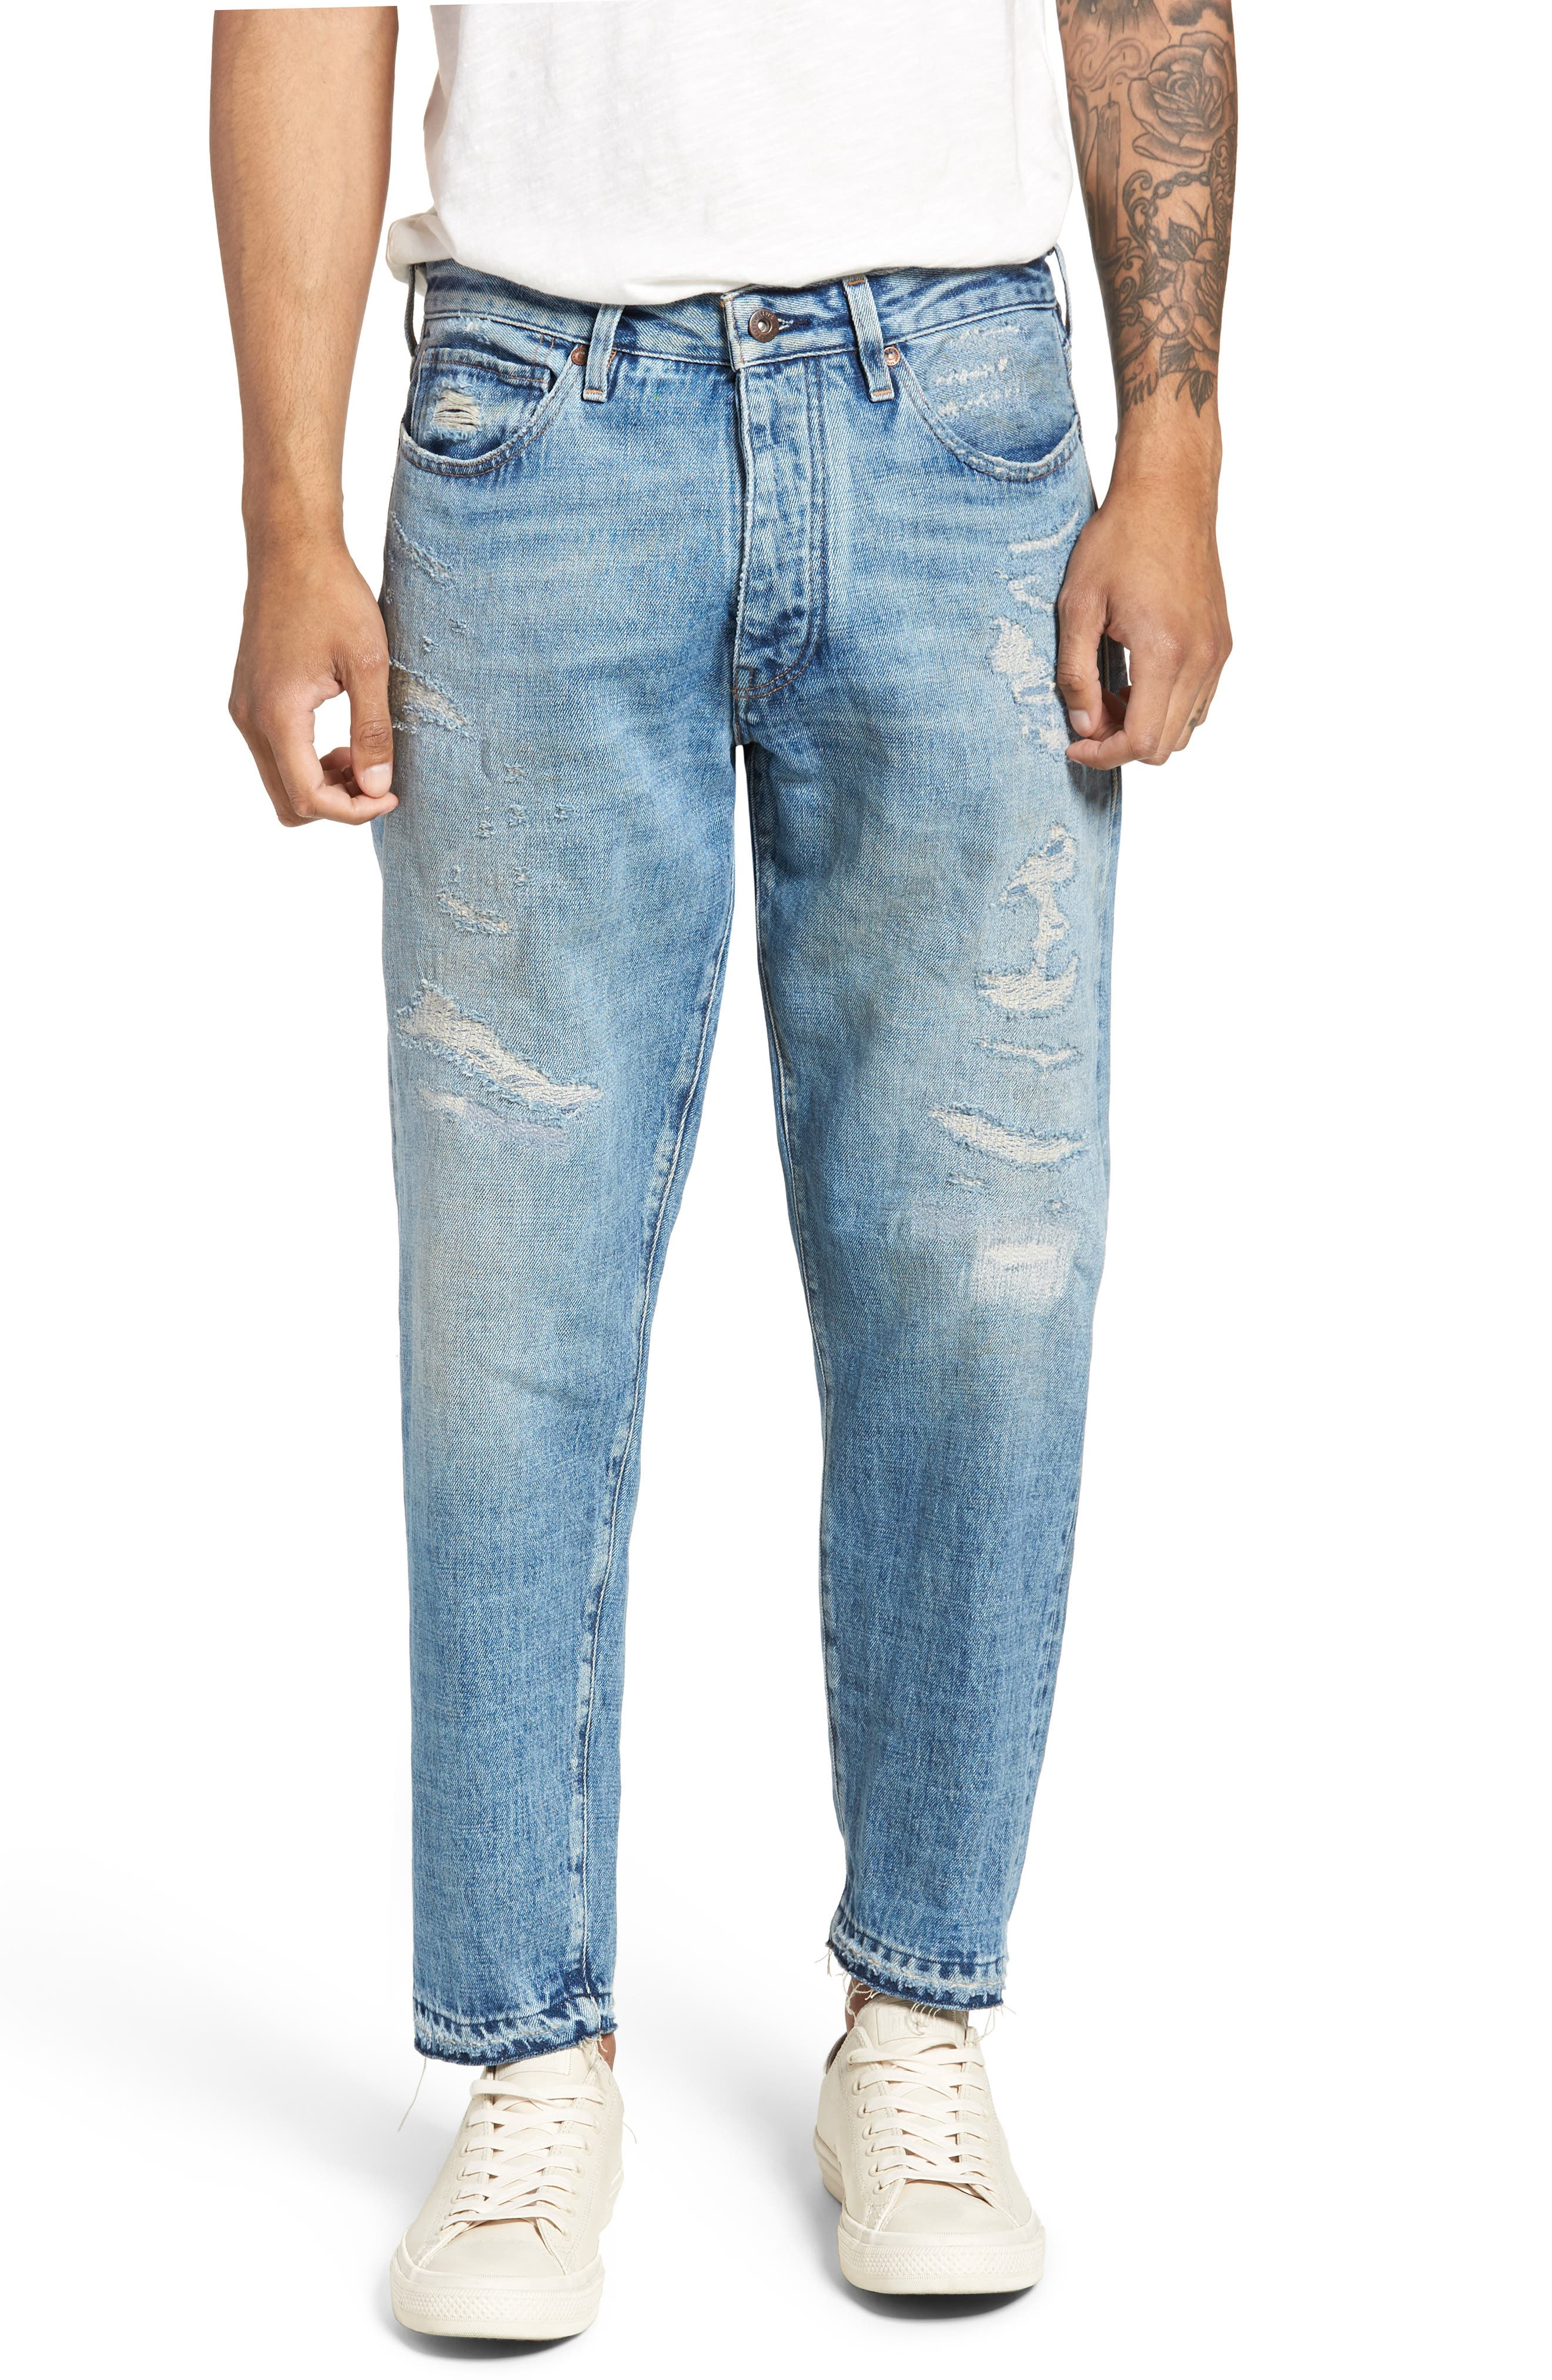 Draft Taper Standard Fit Jeans,                             Main thumbnail 1, color,                             Banzai Pipeline